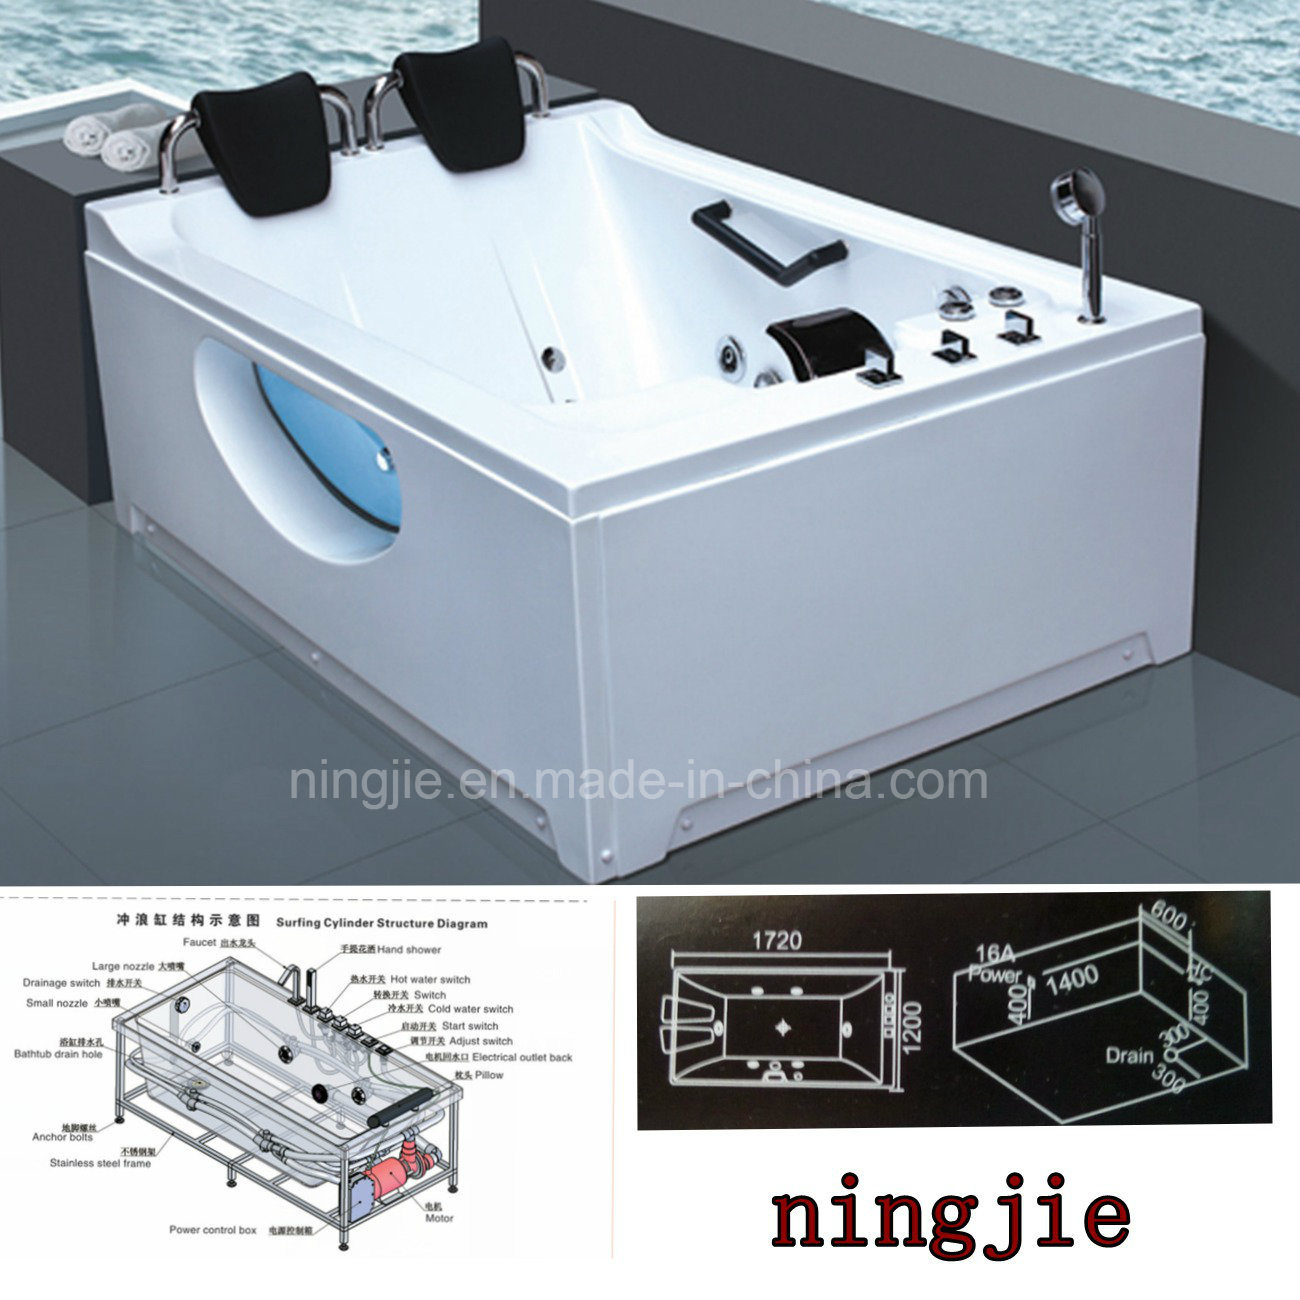 China Special Bathroom Sanitary Ware Double Whirlpool Bathtub (5219 ...